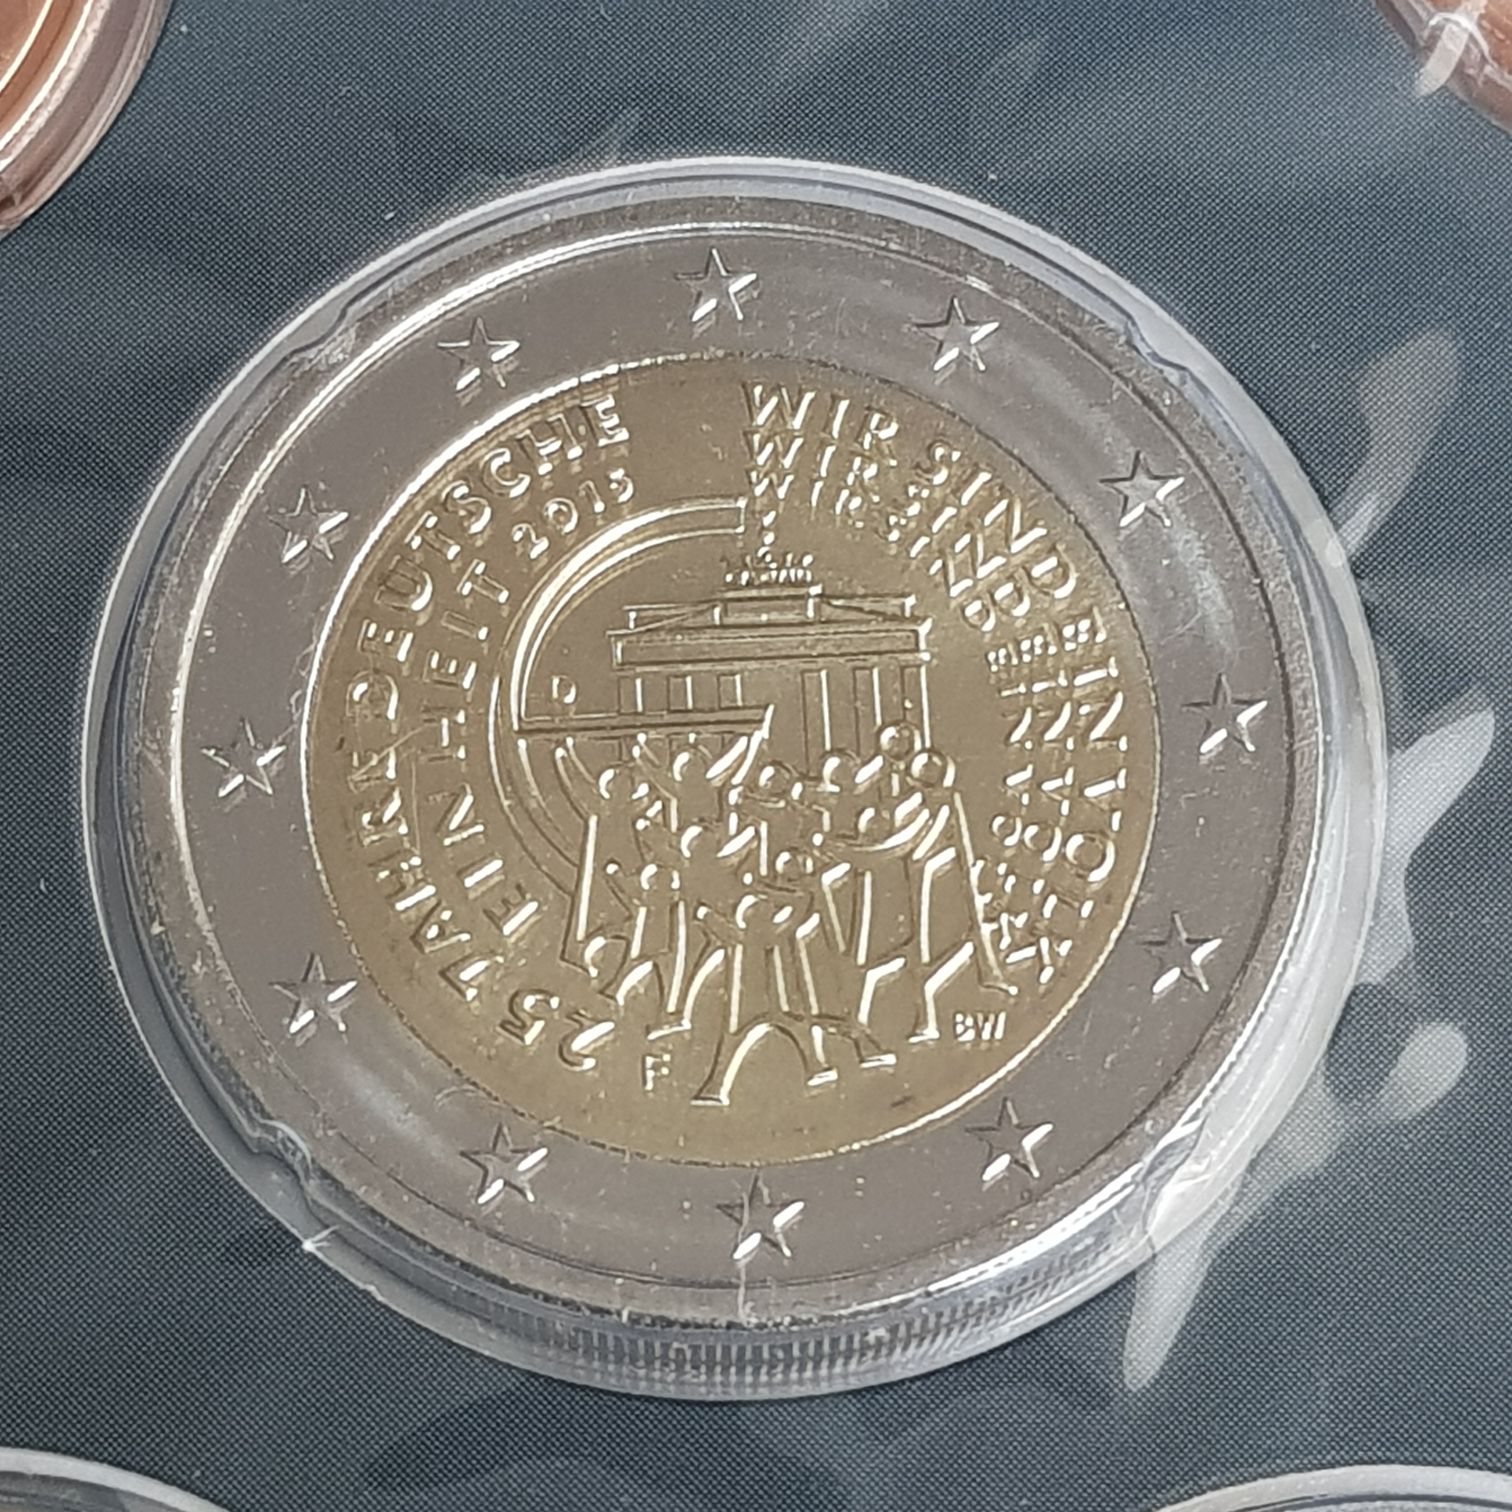 2 Euros Coin - $2 (2015) back image (back cover, second image)